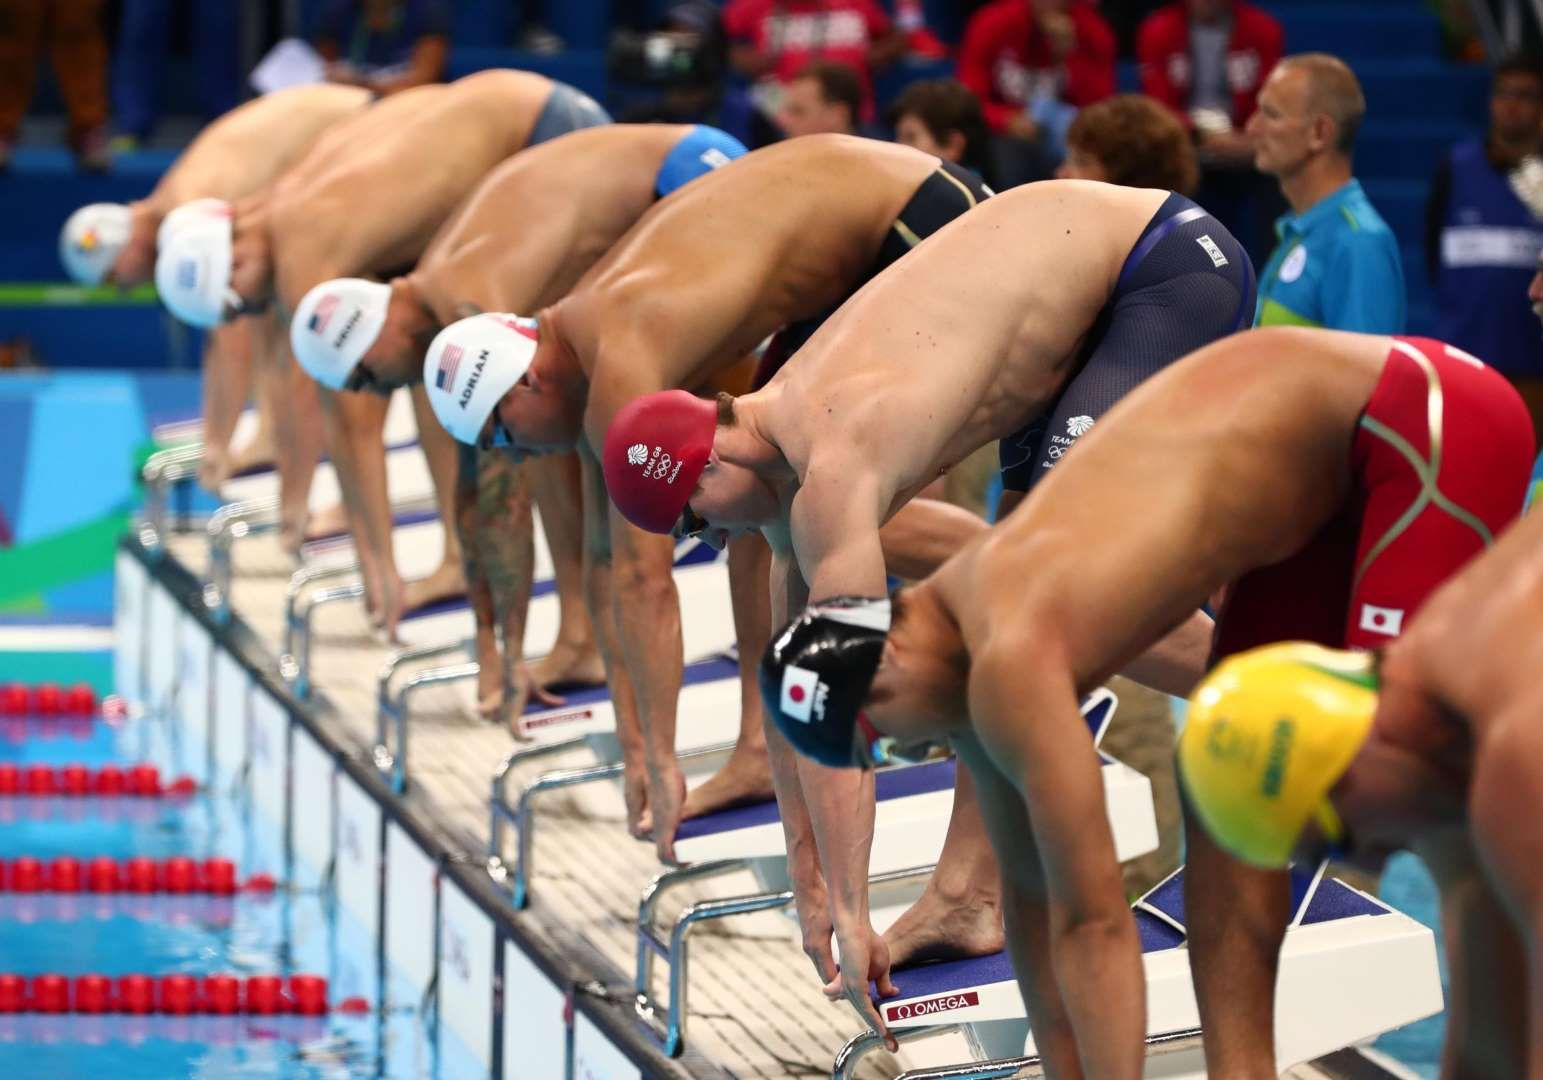 Genial Swimmers Wait In The Starting Blocks During The Menu0027s Freestyle Heats In  The Rio 2016 Summer Olympic Games At Olympic Aquatics Stadium.